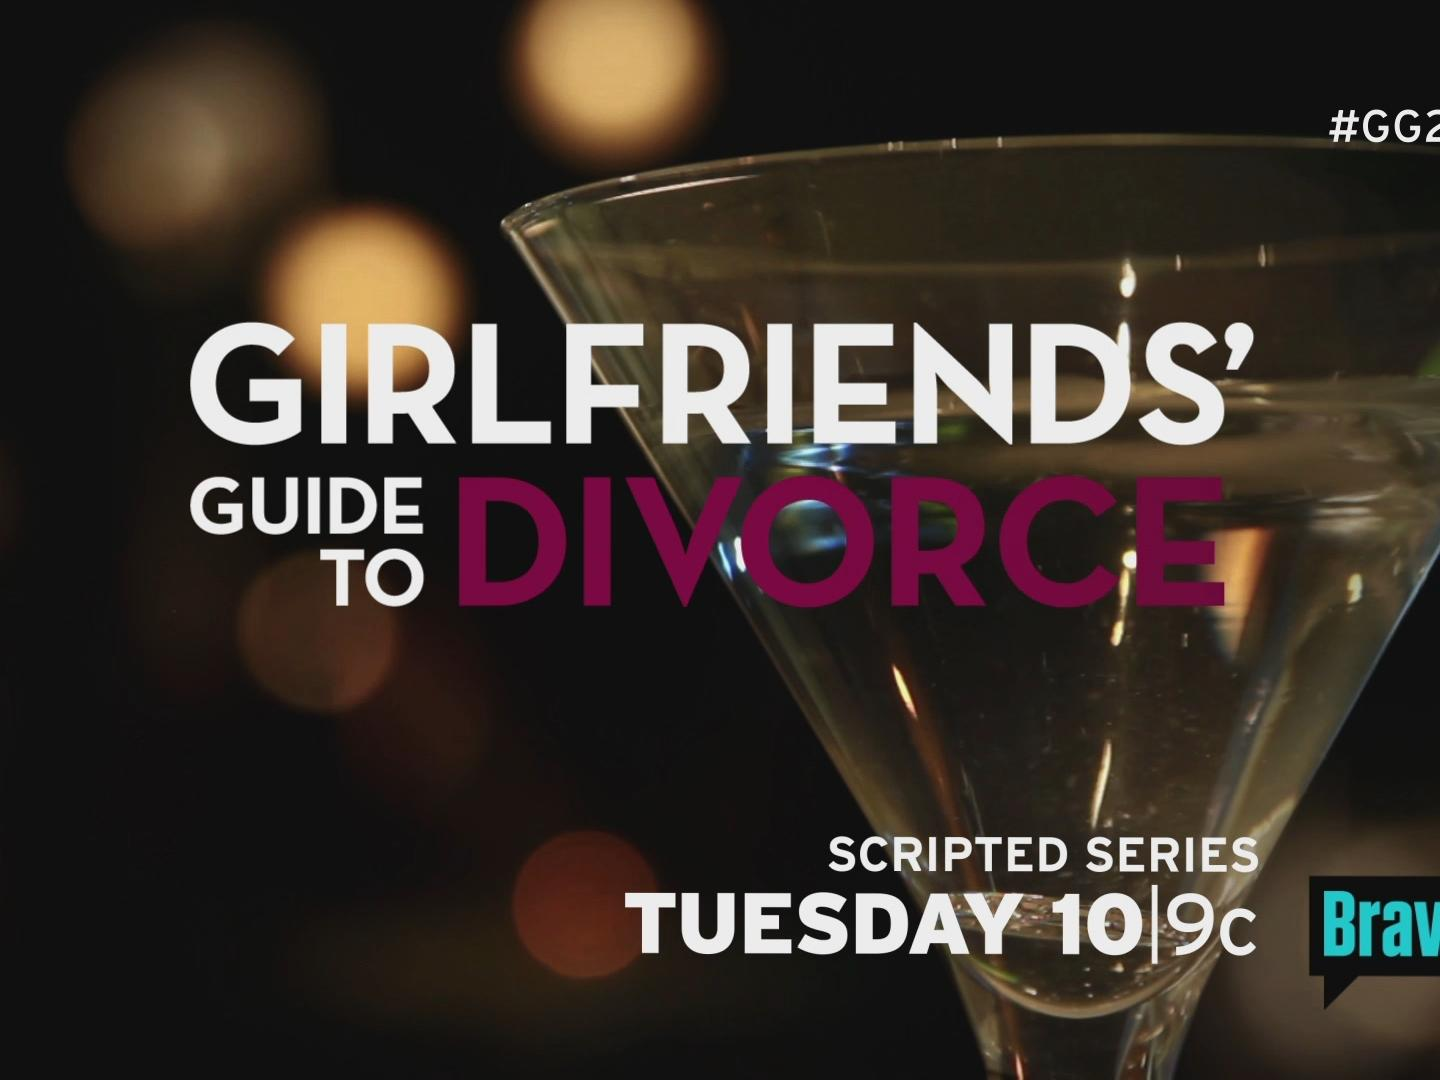 Girlfriends' Guide to Divorce Launch/Script :30 Thumbnail